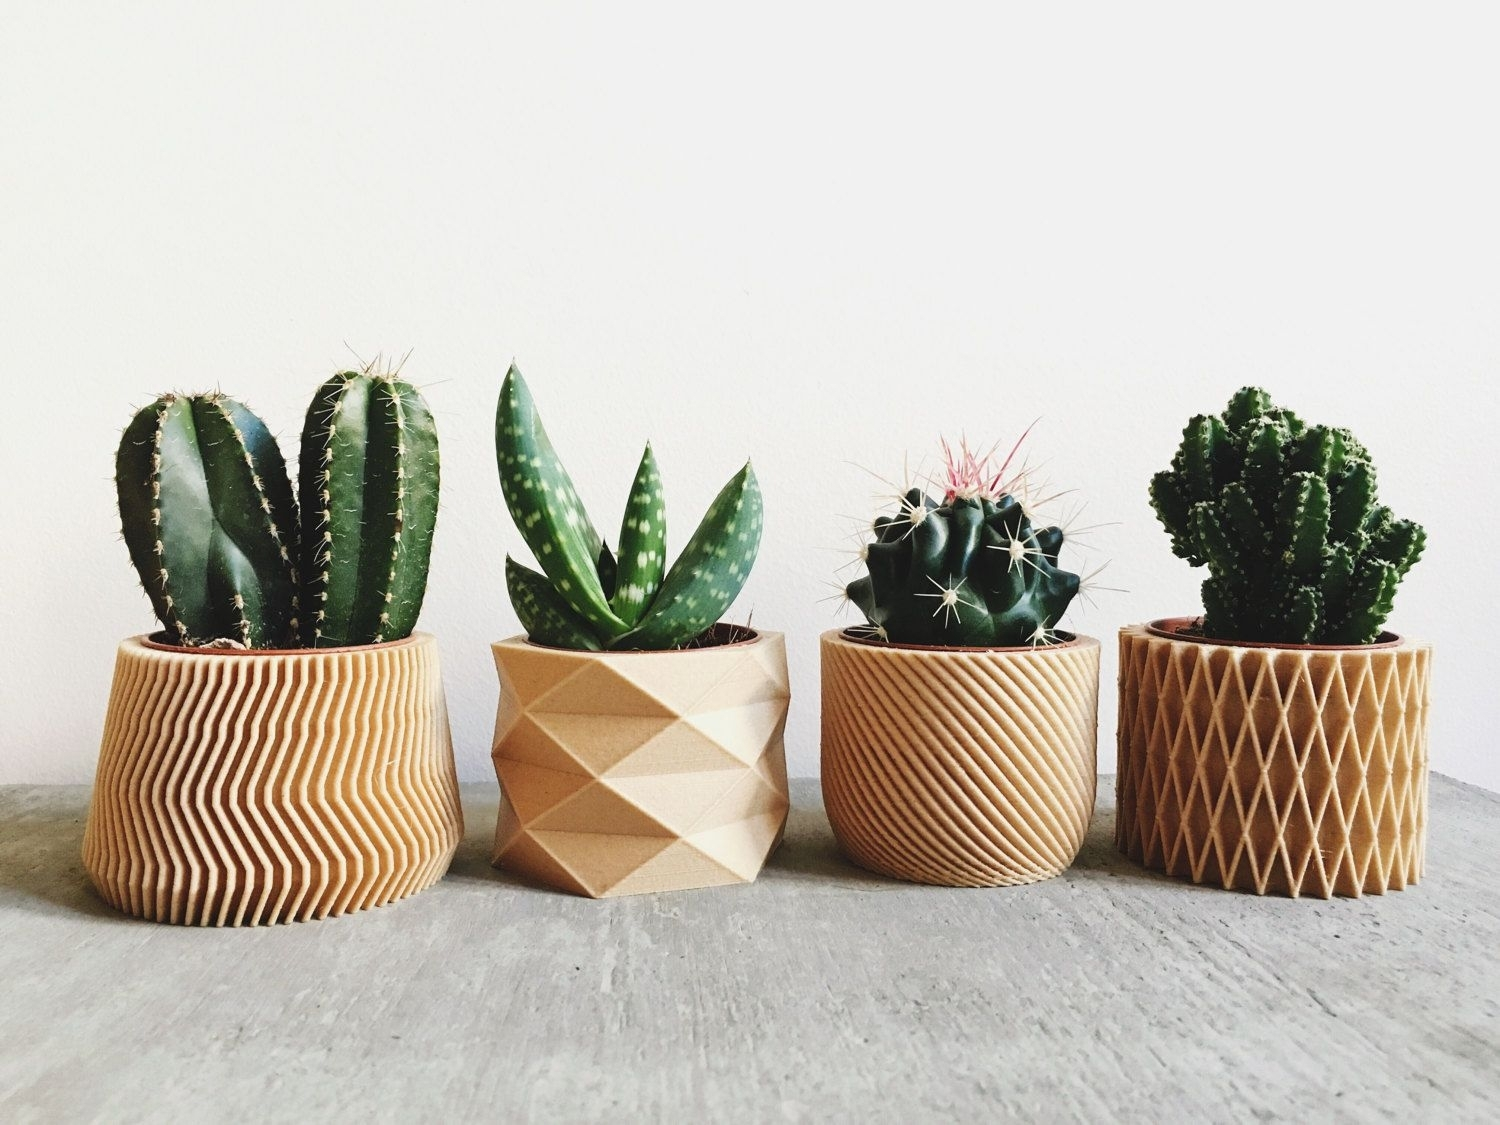 Set Of 4 Mini Wood Planters / Design Hygge Geometric Minimalist throughout Cacti Brass Coffee Tables (Image 24 of 30)